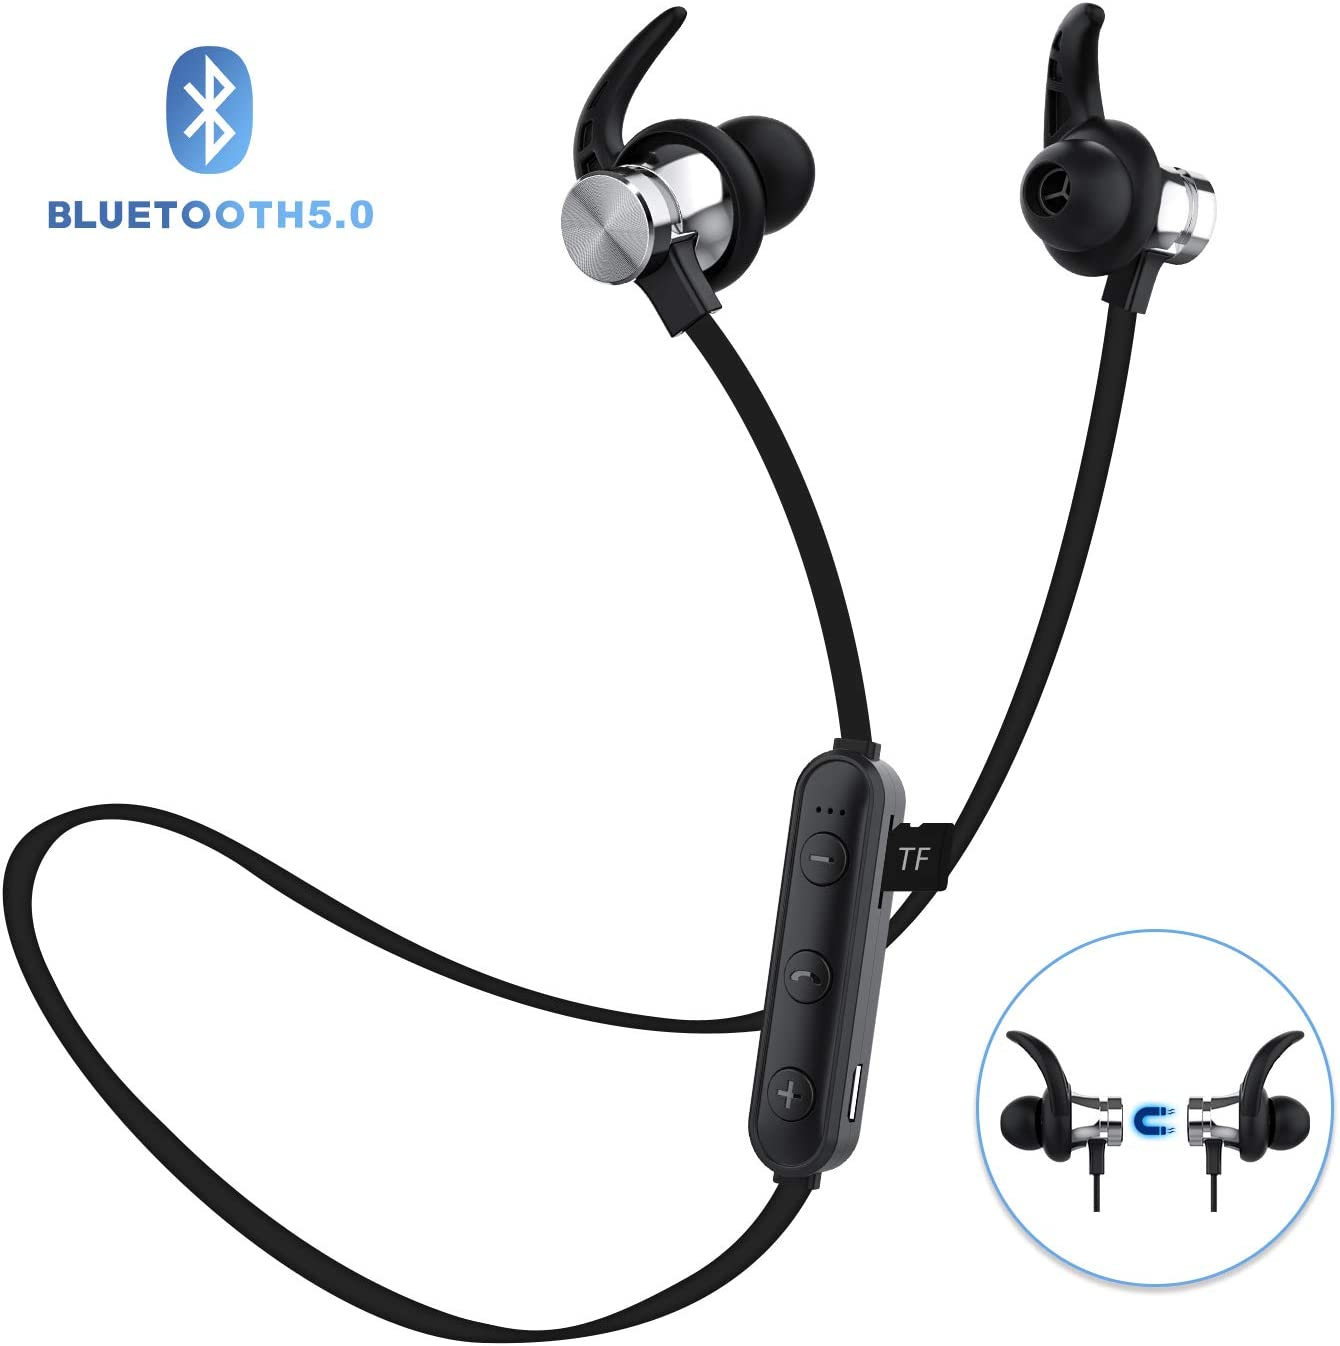 Bluetooth Headphones, ownta Bluetooth 5.0 Wireless Magnetic Earbuds, Snug Fit for Sports with Mic, TF Card Playback Compatible with iPhone iPad Samsung Android Smartphone 9